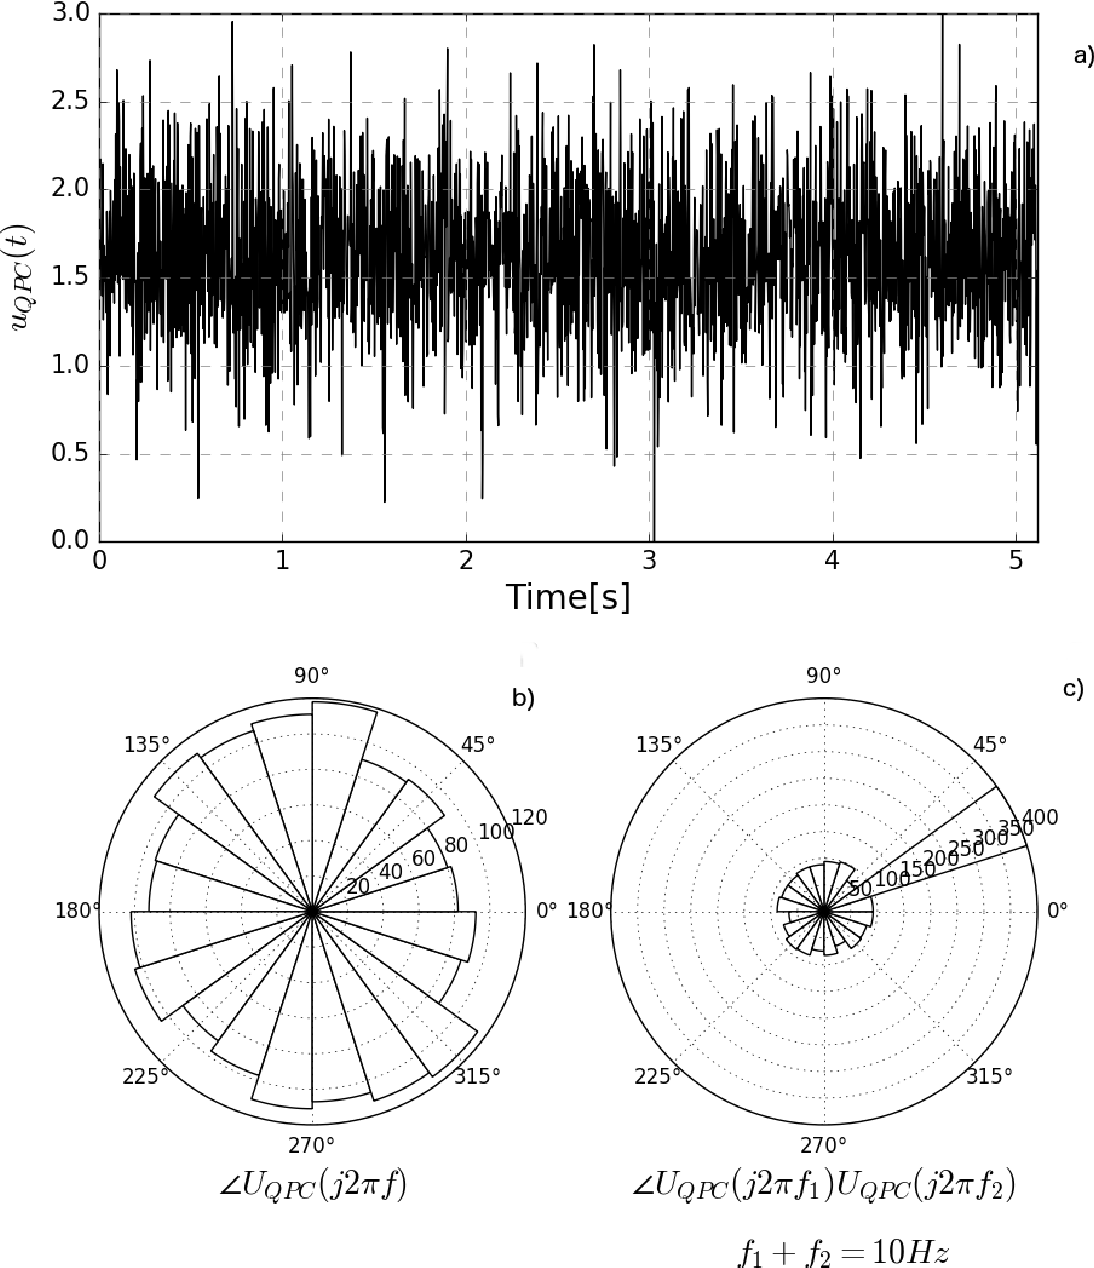 Fig. 6.1 Quadratically Phase Coupled Stimulus. Panel (a) contains the phase modified Gaussian noise stimulus uQPC(t), which exhibits quadratic phase coupling at 10Hz. . Panels (b) and (c), show the phase angle histograms of UQPC( jω).